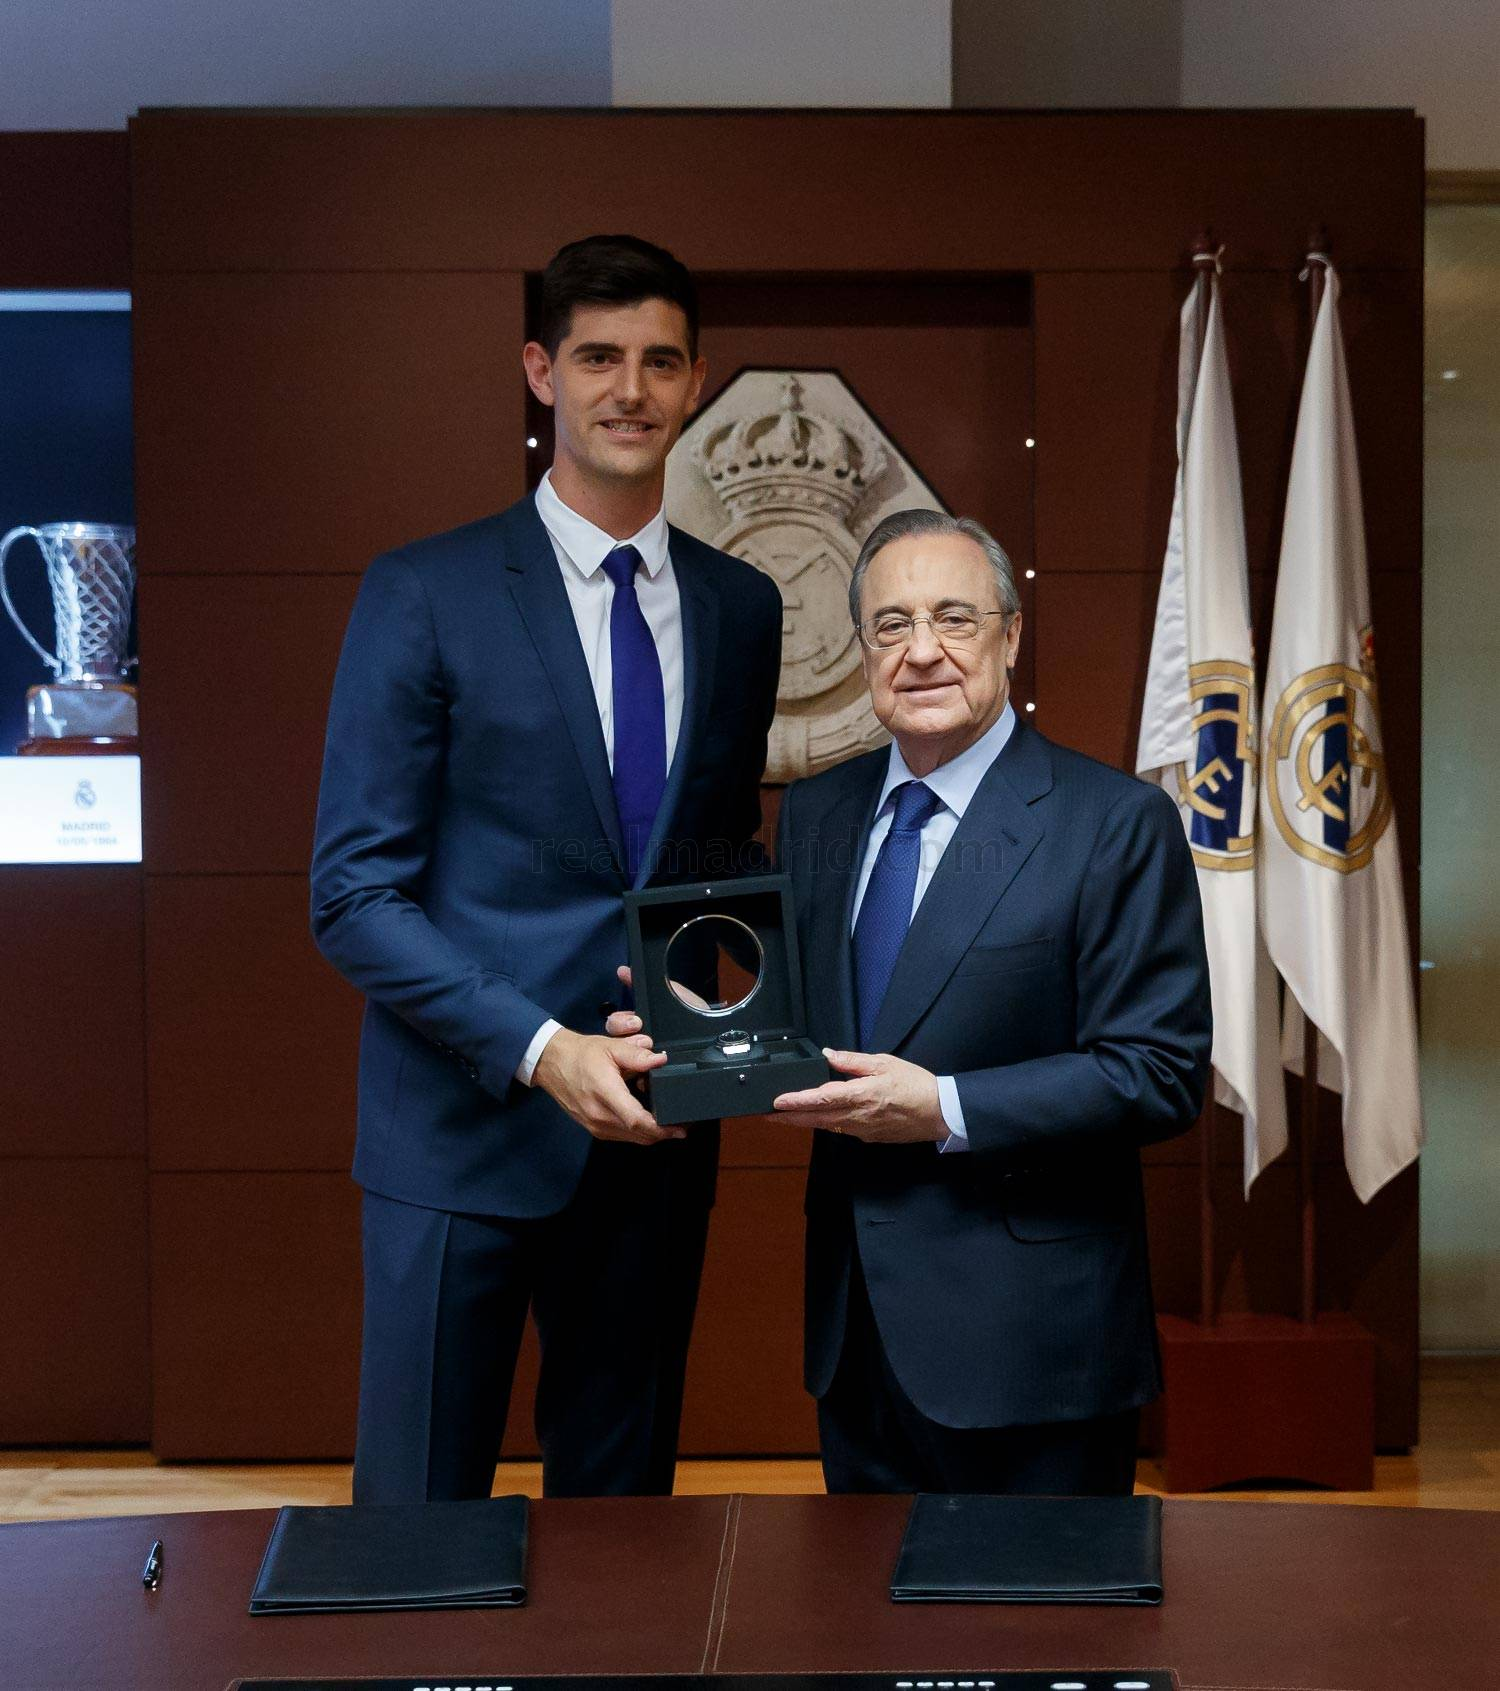 ¿Cuánto mide Thibaut Courtois? - Altura - Real height _he23554